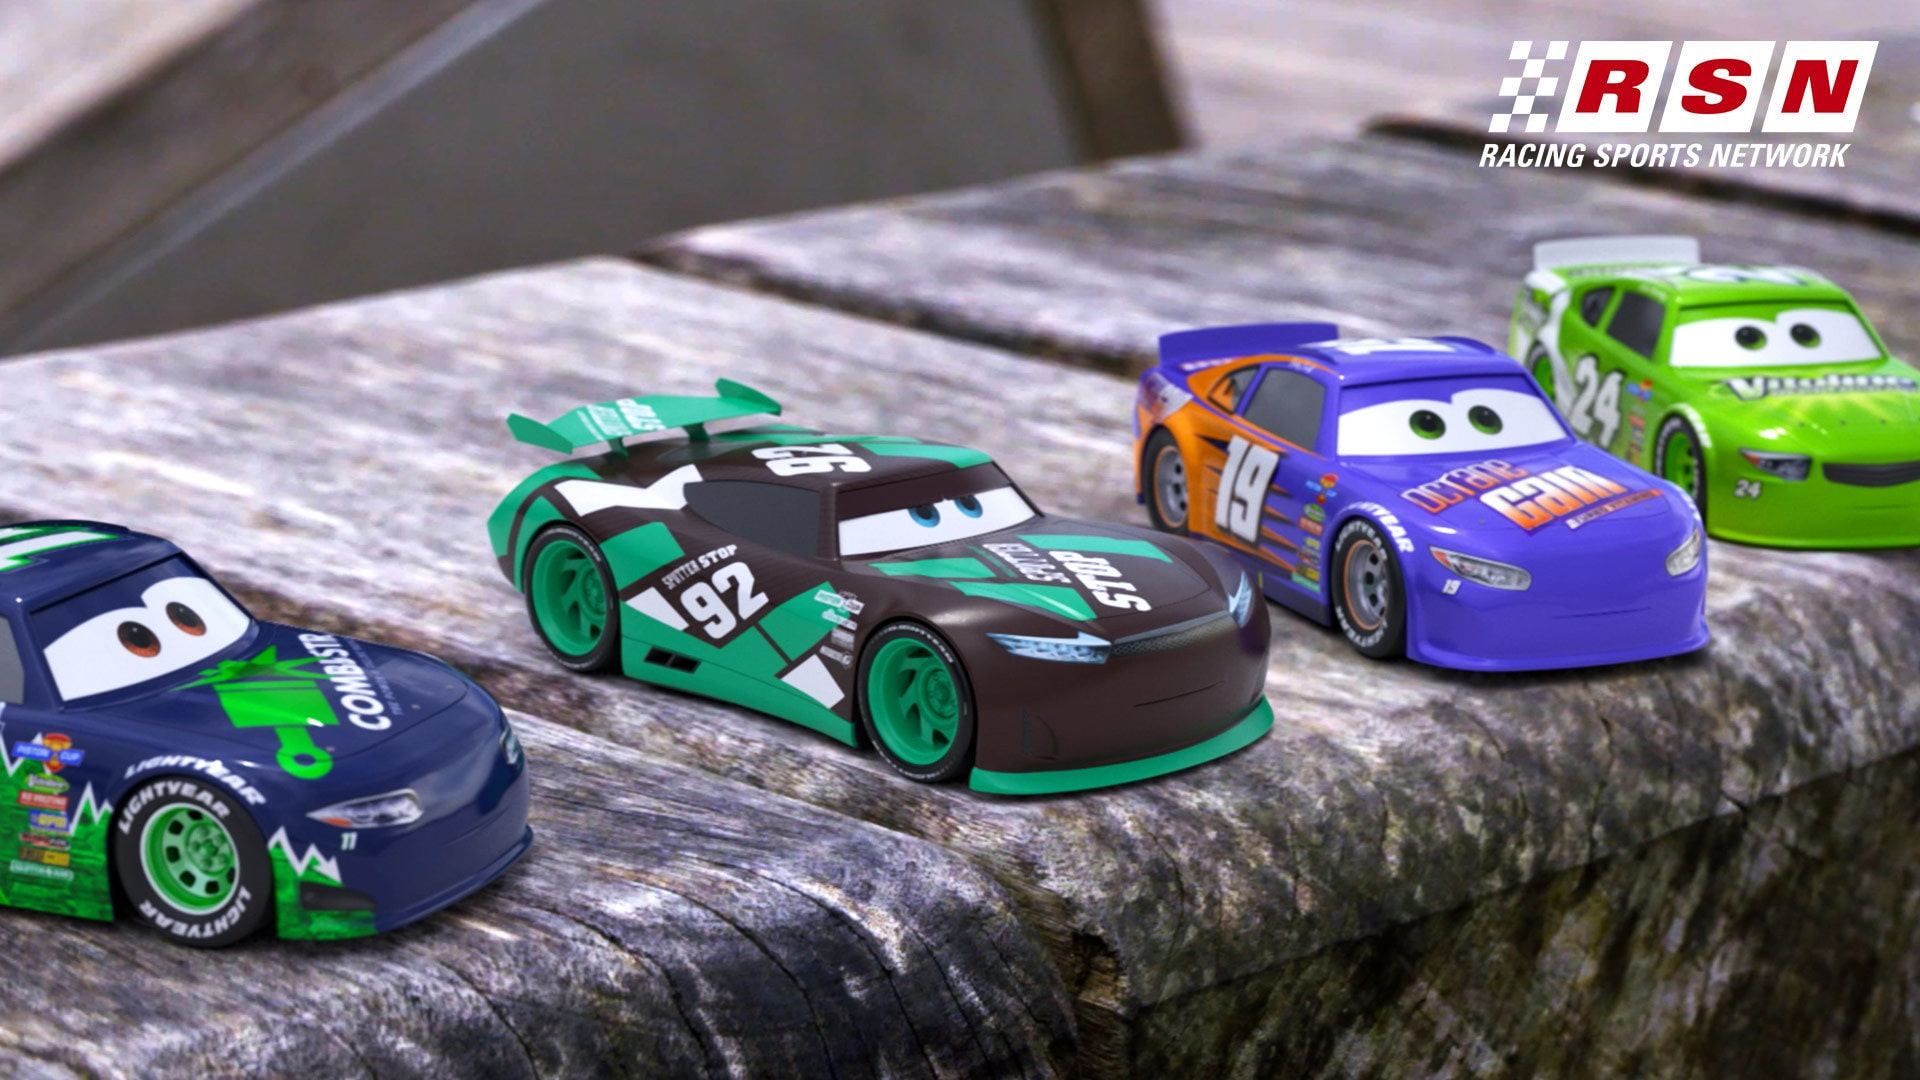 Cars Daredevil Garage Takes on the Playground | Racing Sports Network by Disney•Pixar Cars